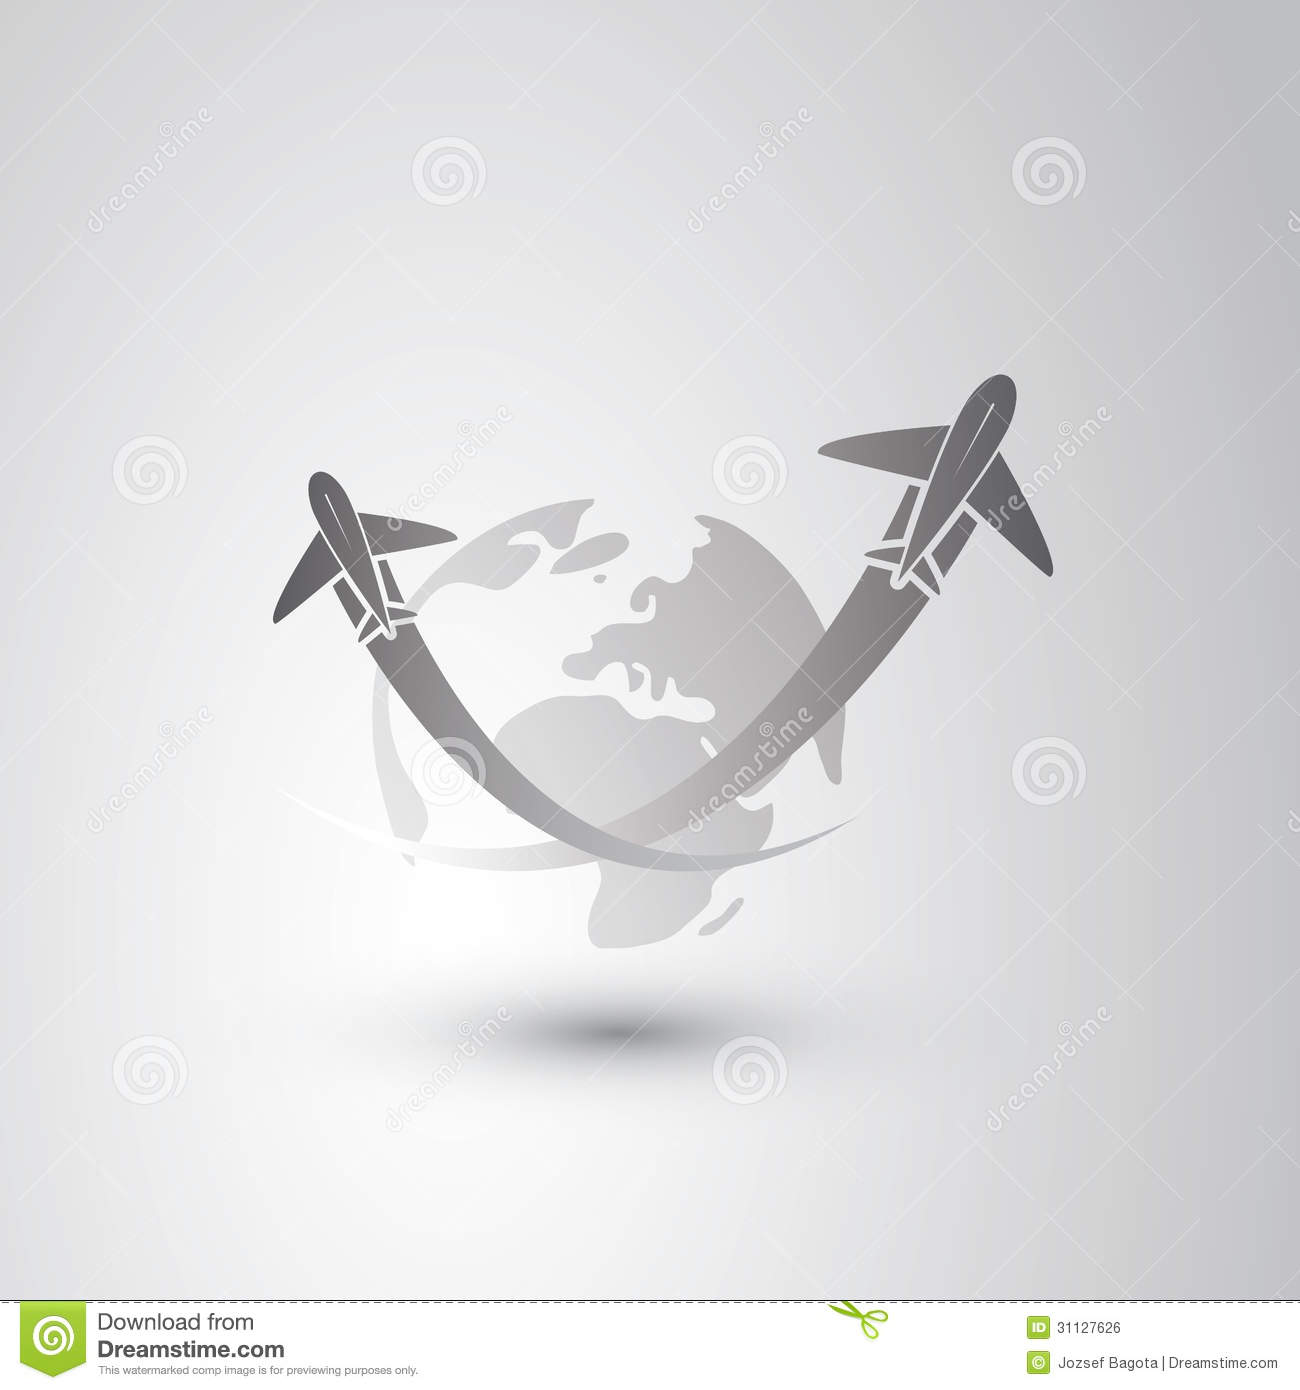 Go To Sky Airplanes Icon Royalty Free Stock Image